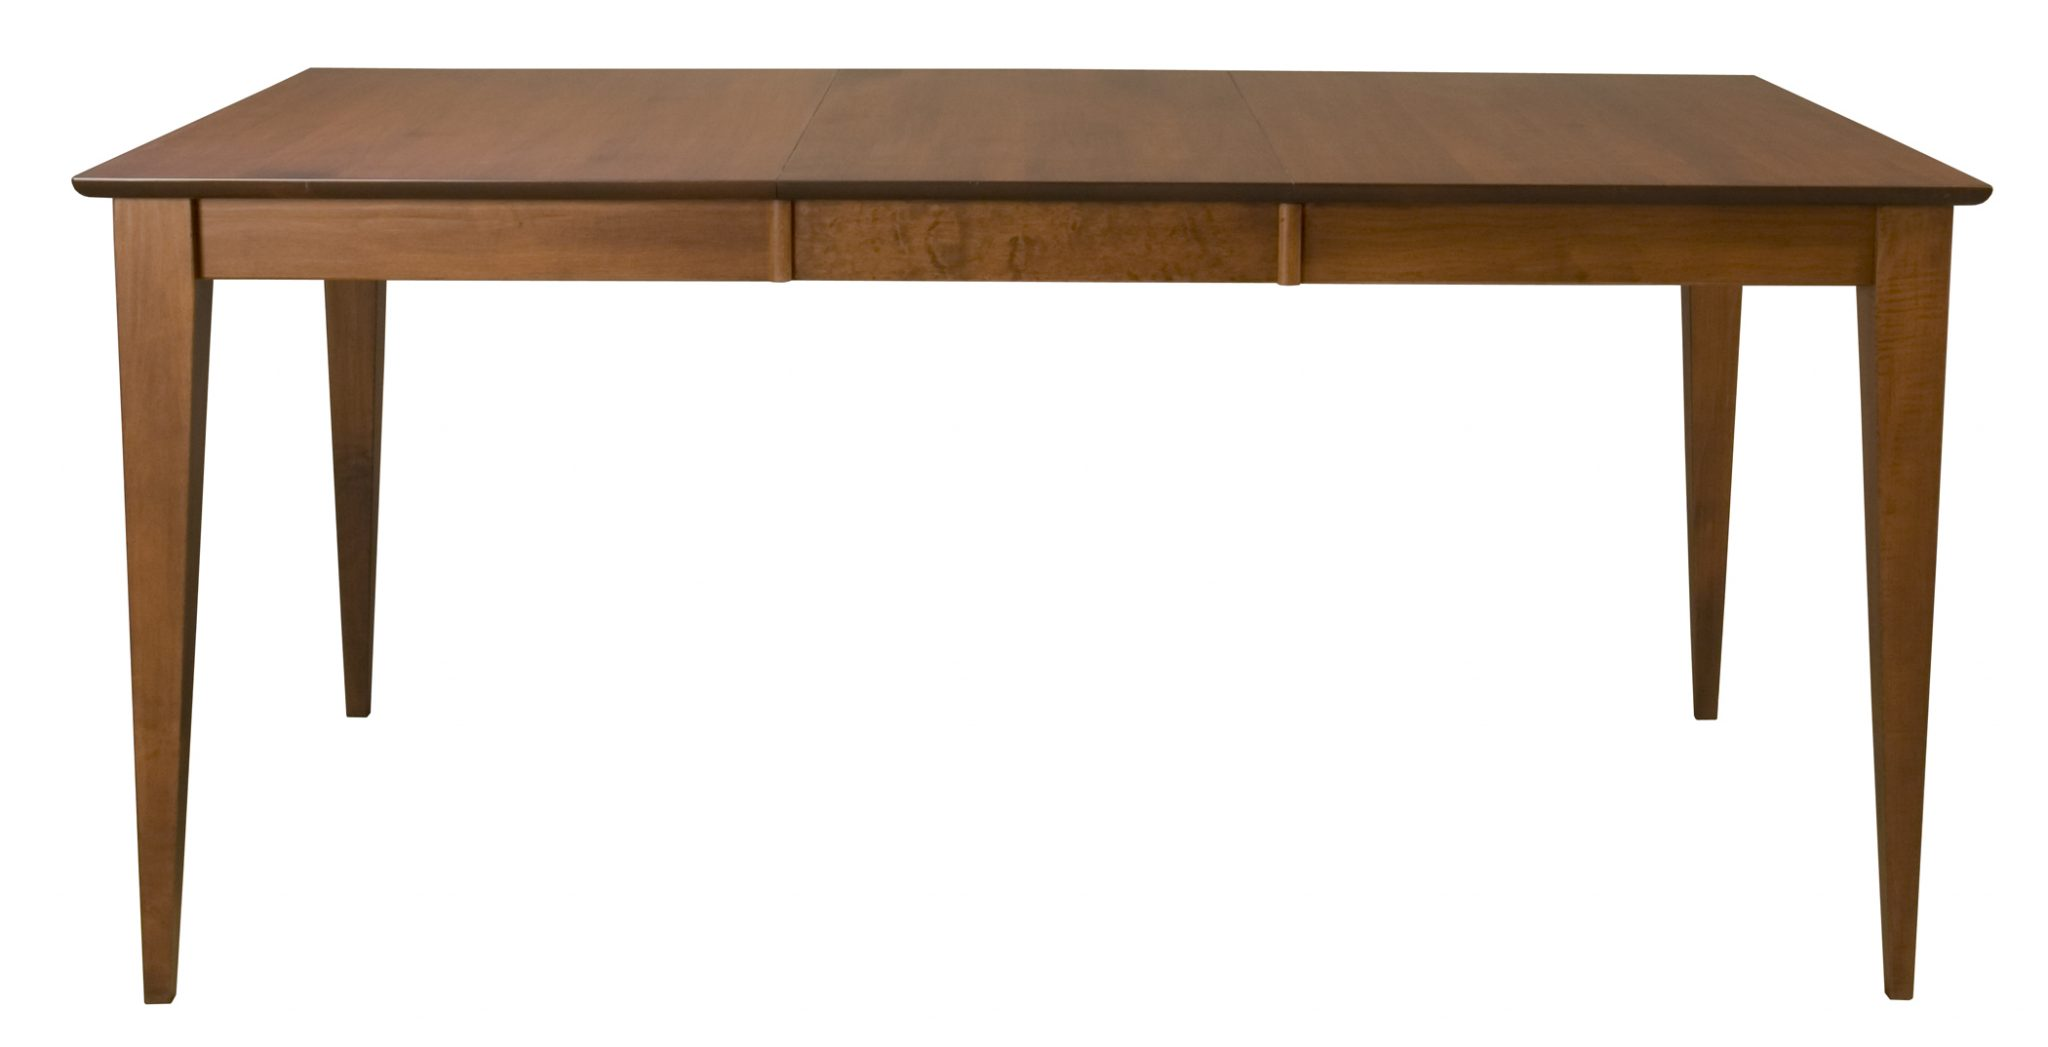 York Dining Table – Saloom Furniture pany